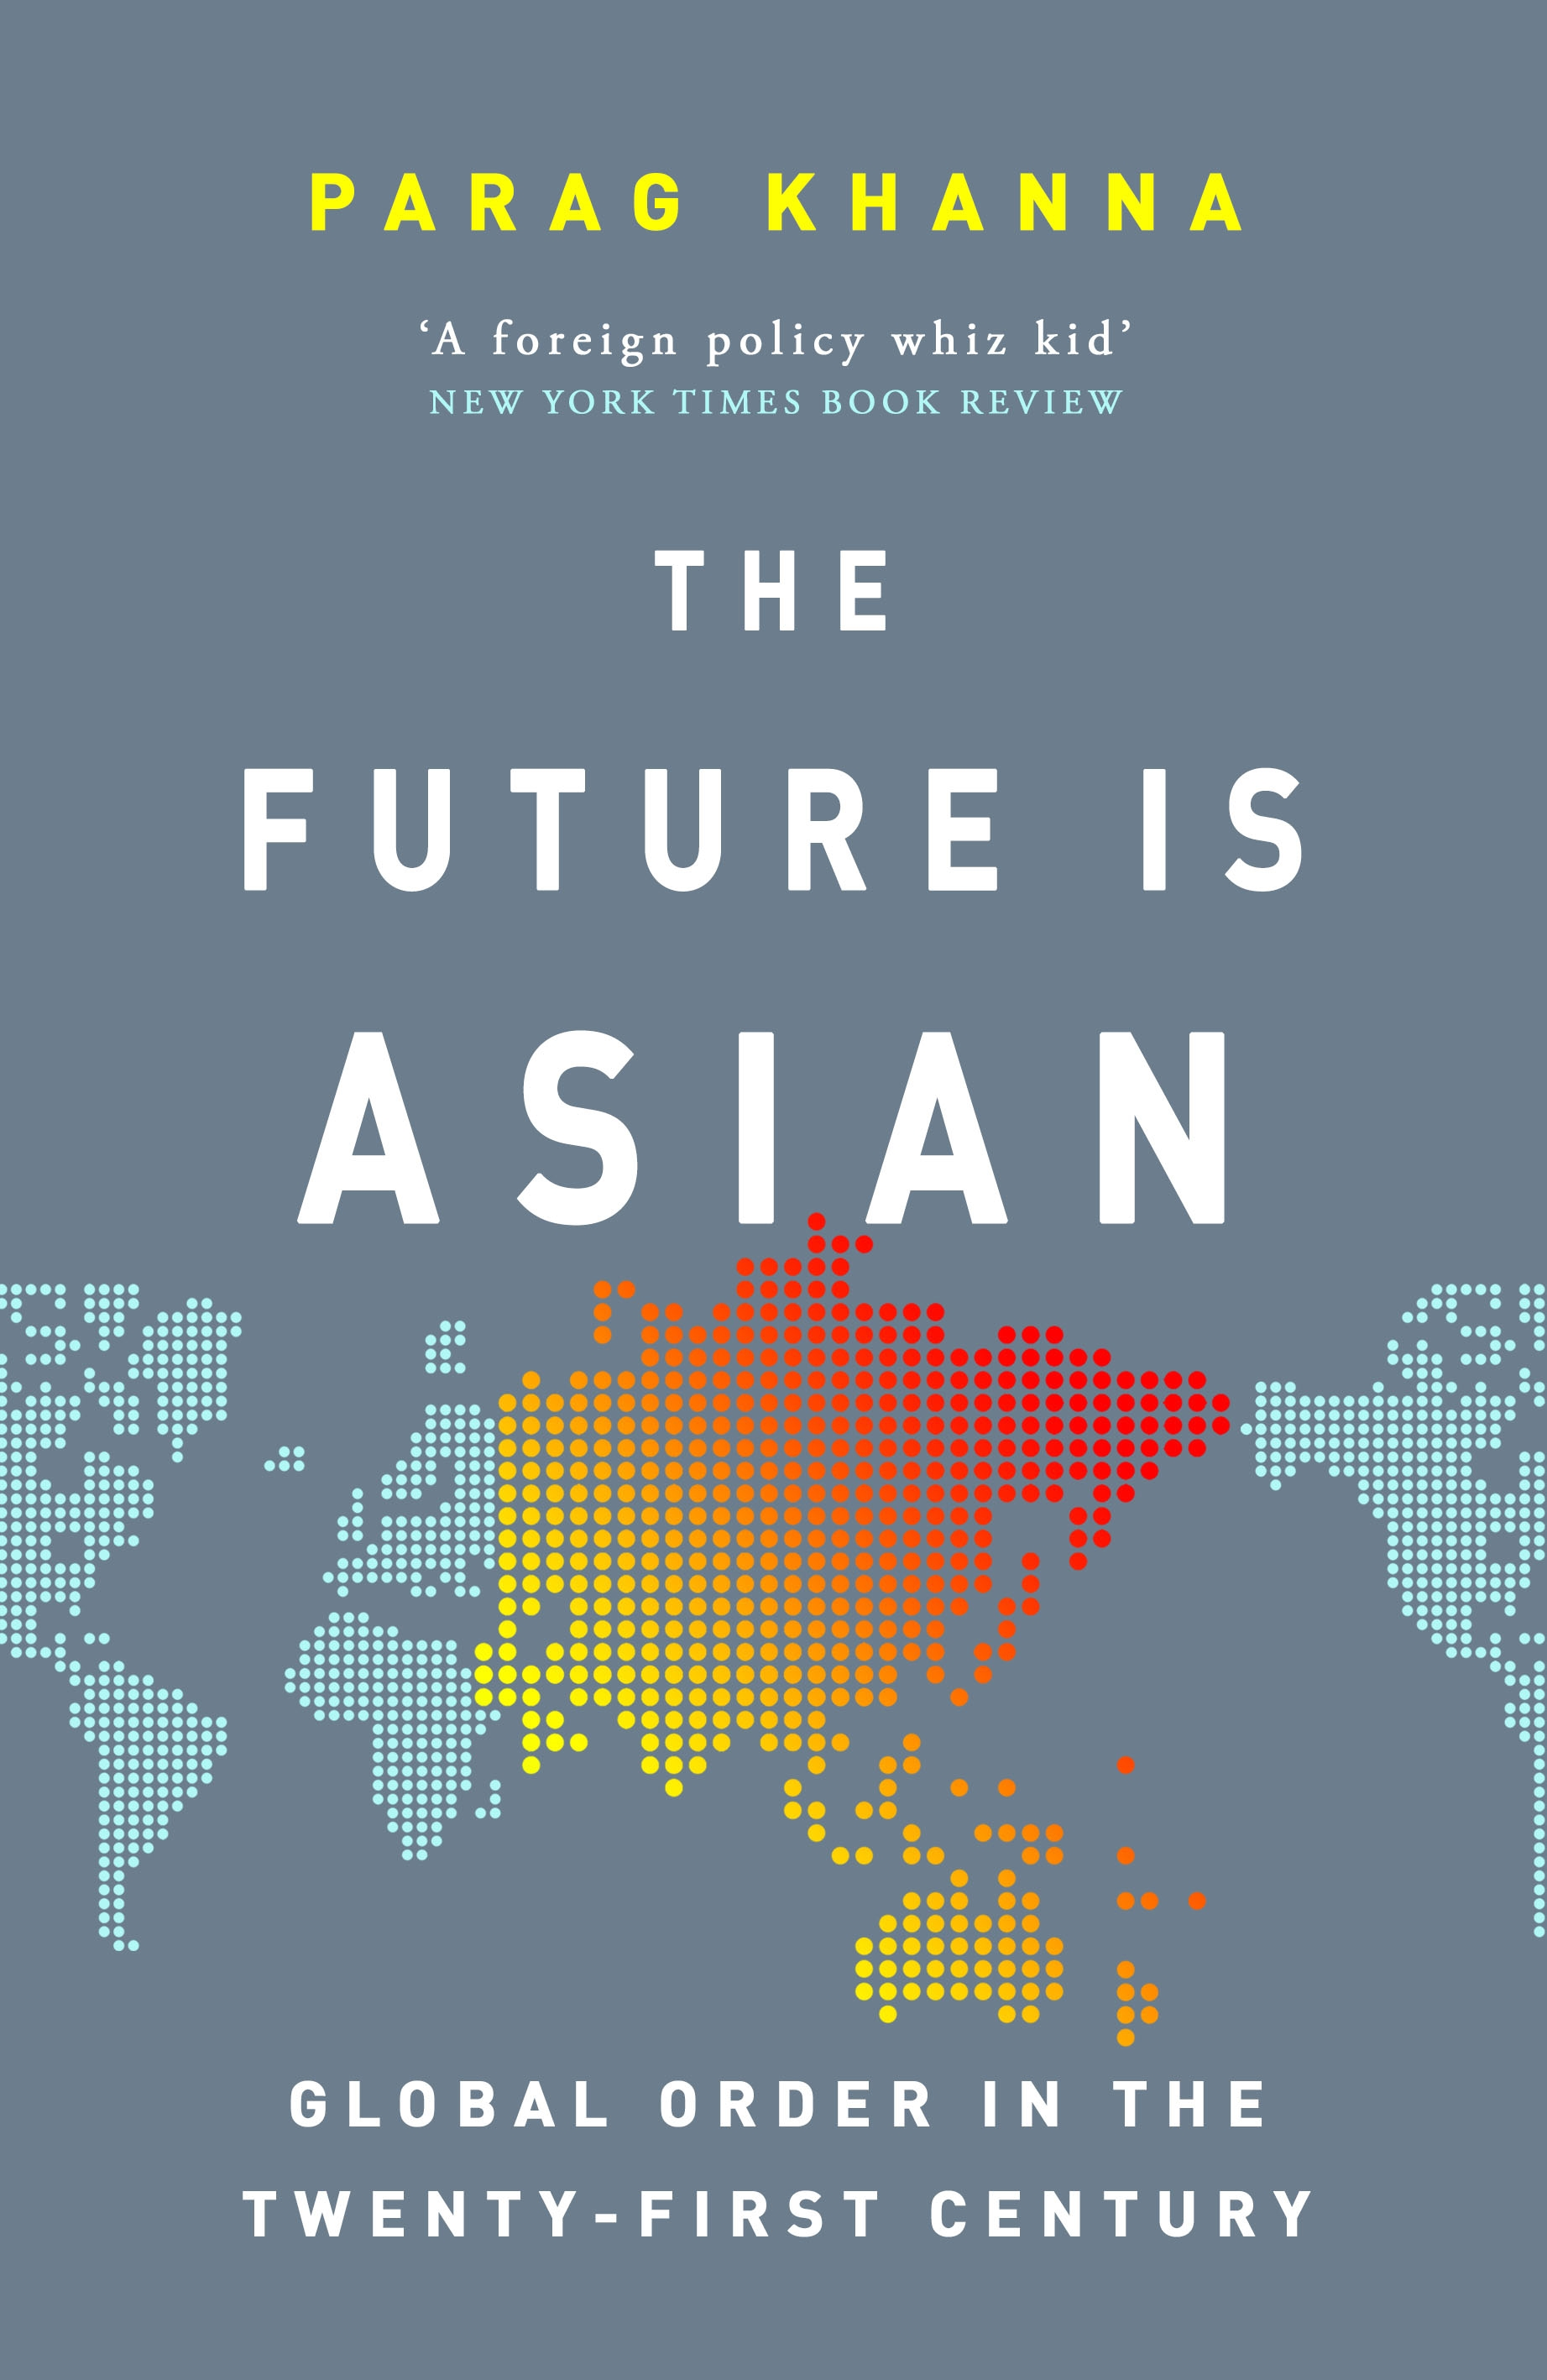 Future is Asian